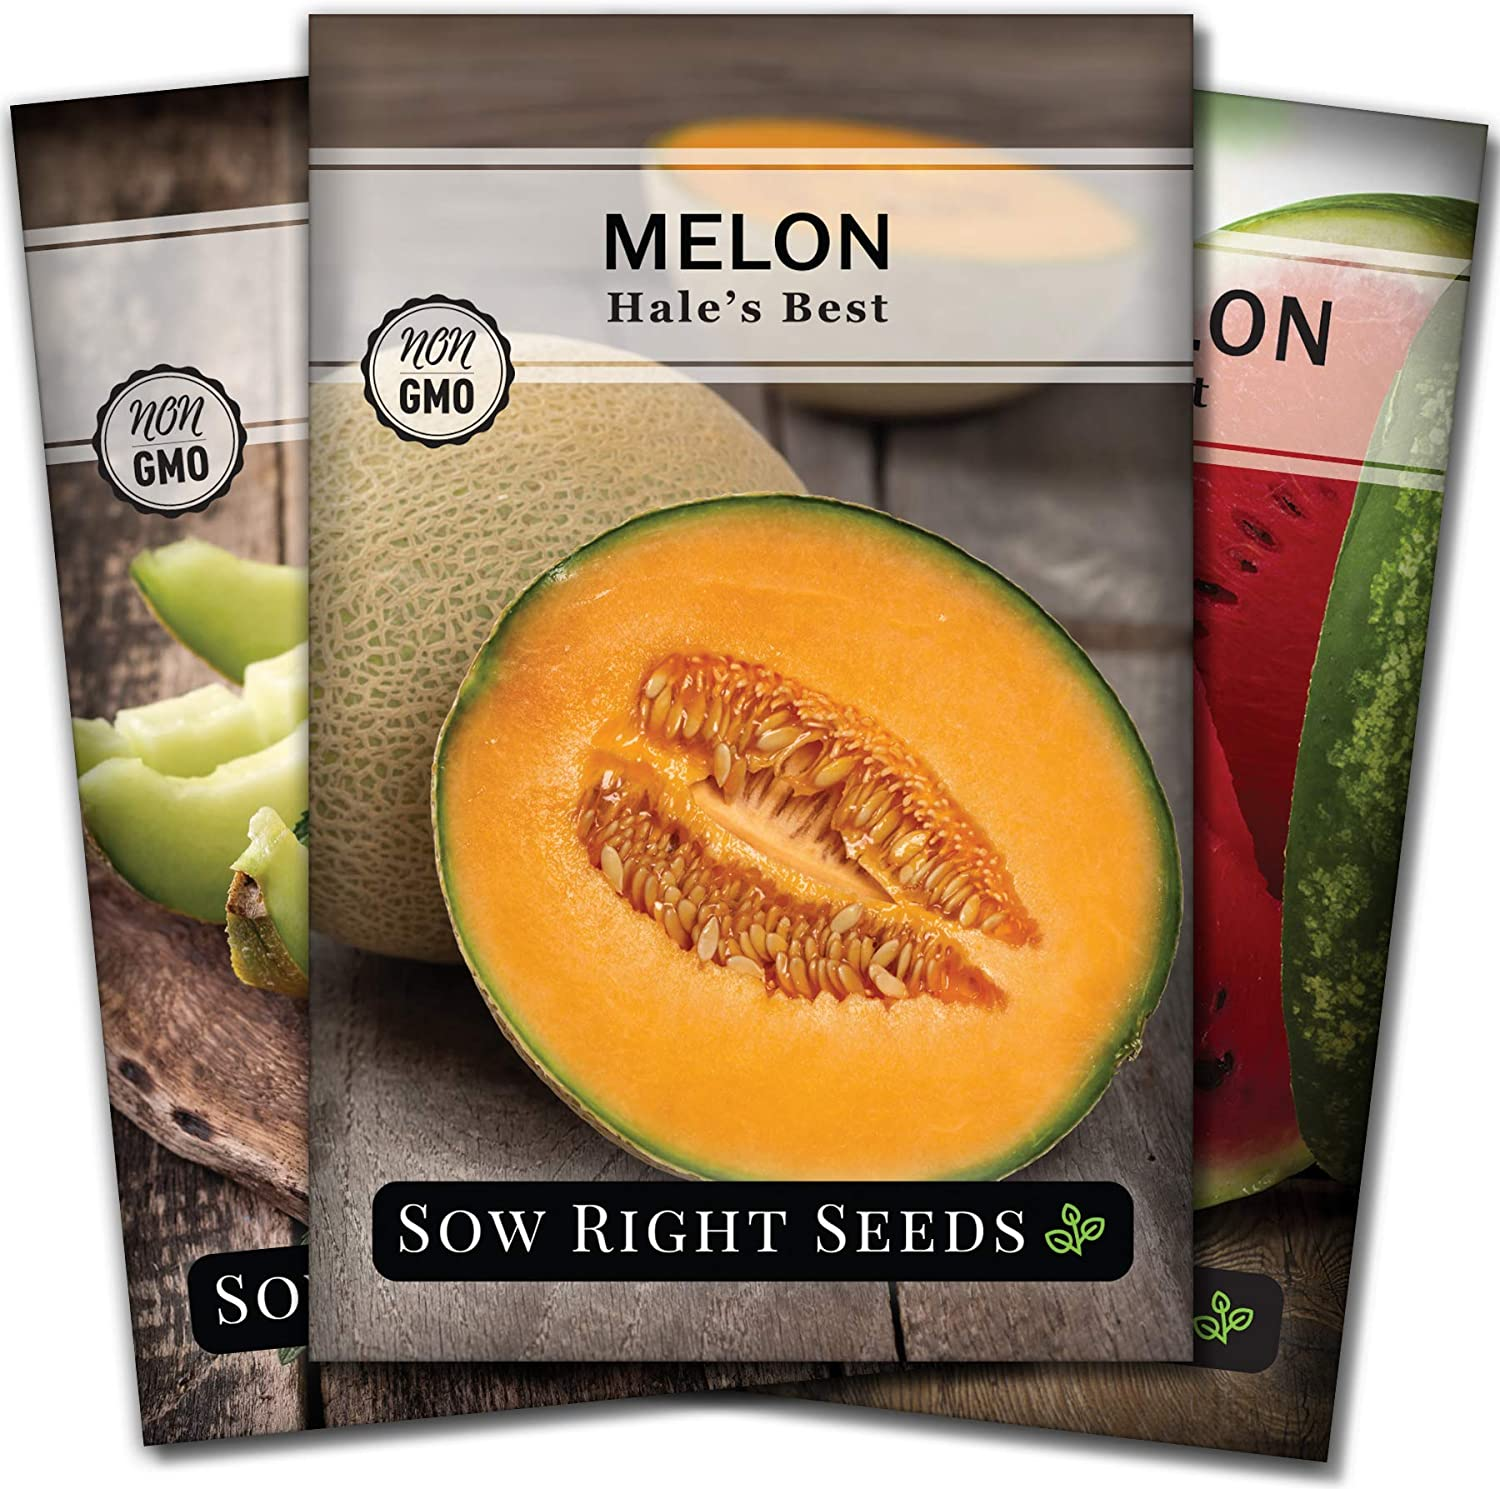 Sow Right Seeds - Melon Seed Collection for Planting - Individual Packets Crimson Sweet Watermelon, Hales Best Cantaloupe and Honeydew, Non-GMO Heirloom Seeds to Plant an Outdoor Home Vegetable Garden